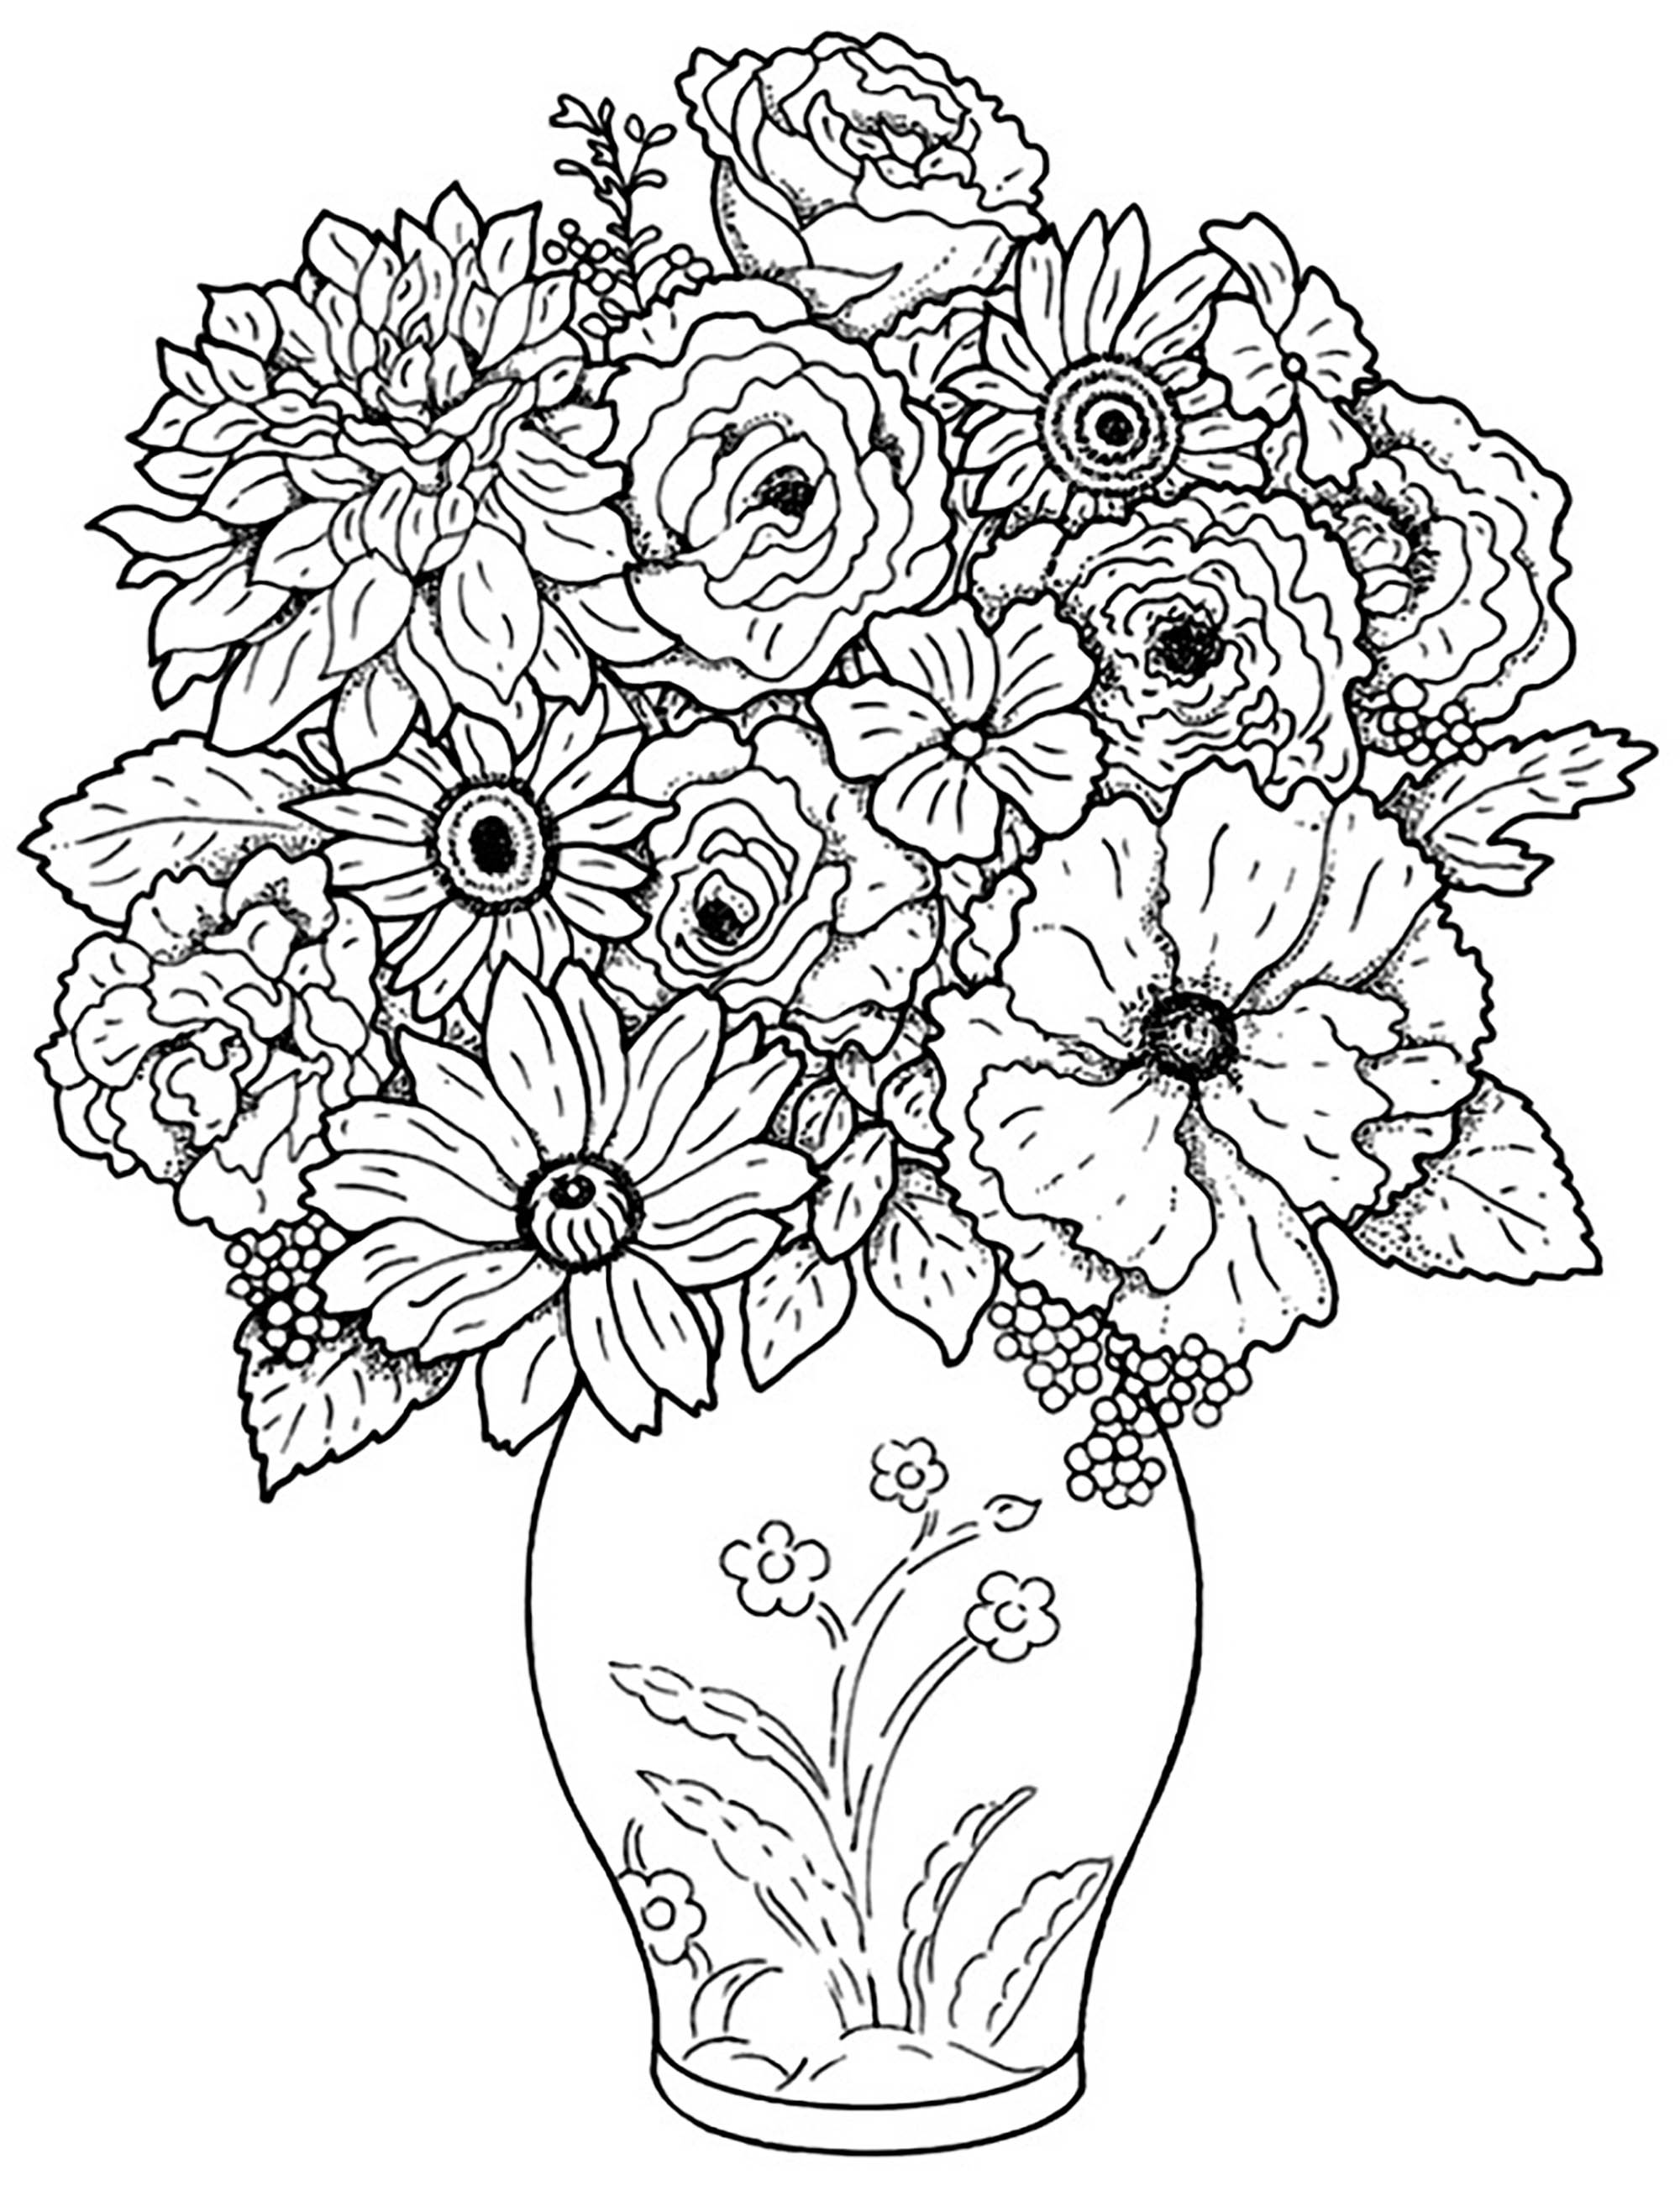 flowers coloring page free printable flower coloring pages for kids cool2bkids page flowers coloring